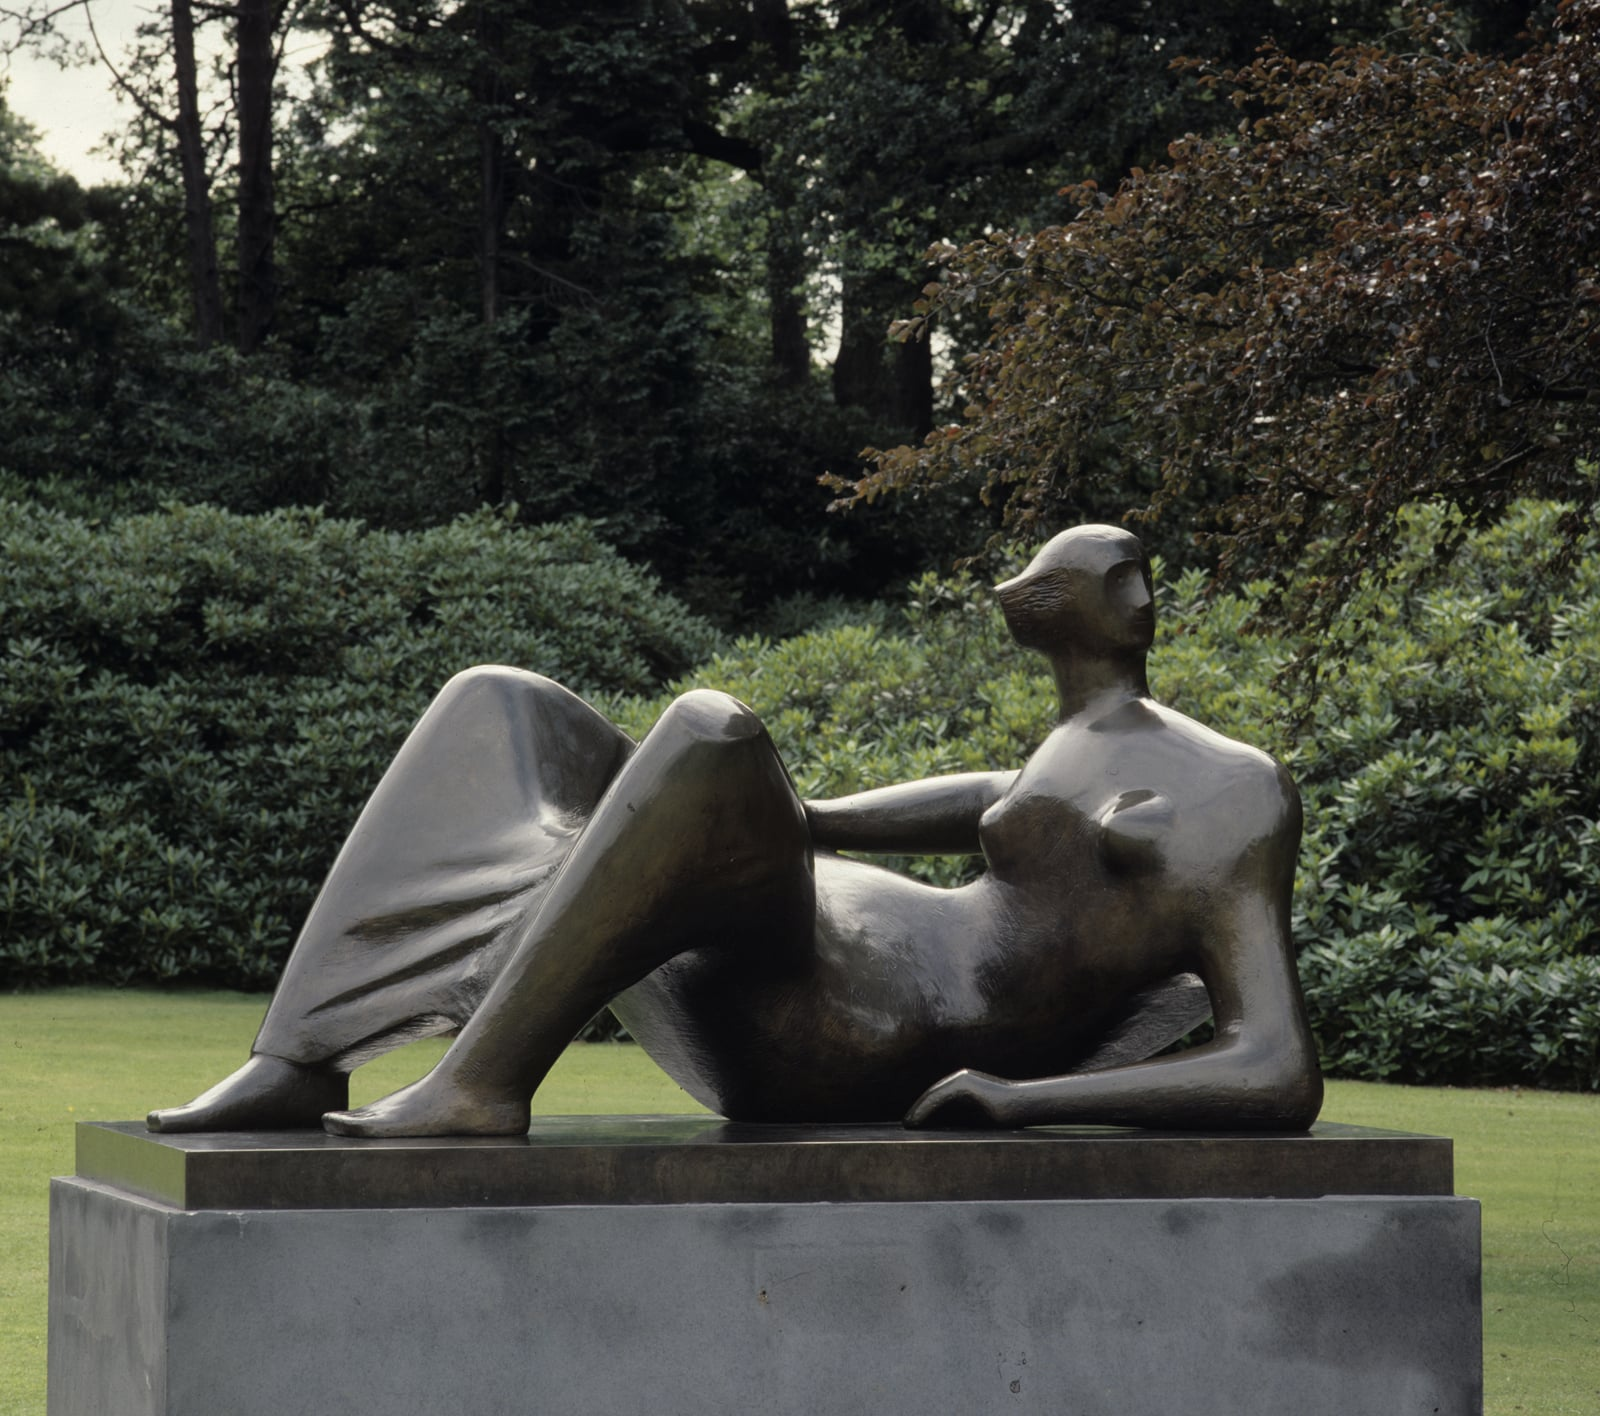 1. Henry Moore: Back to a Land, Yorkshire Sculpture Park - Henry Moore, Reclining Figure Angles, 1979. Reproduced by permission of the Henry Moore Foundation